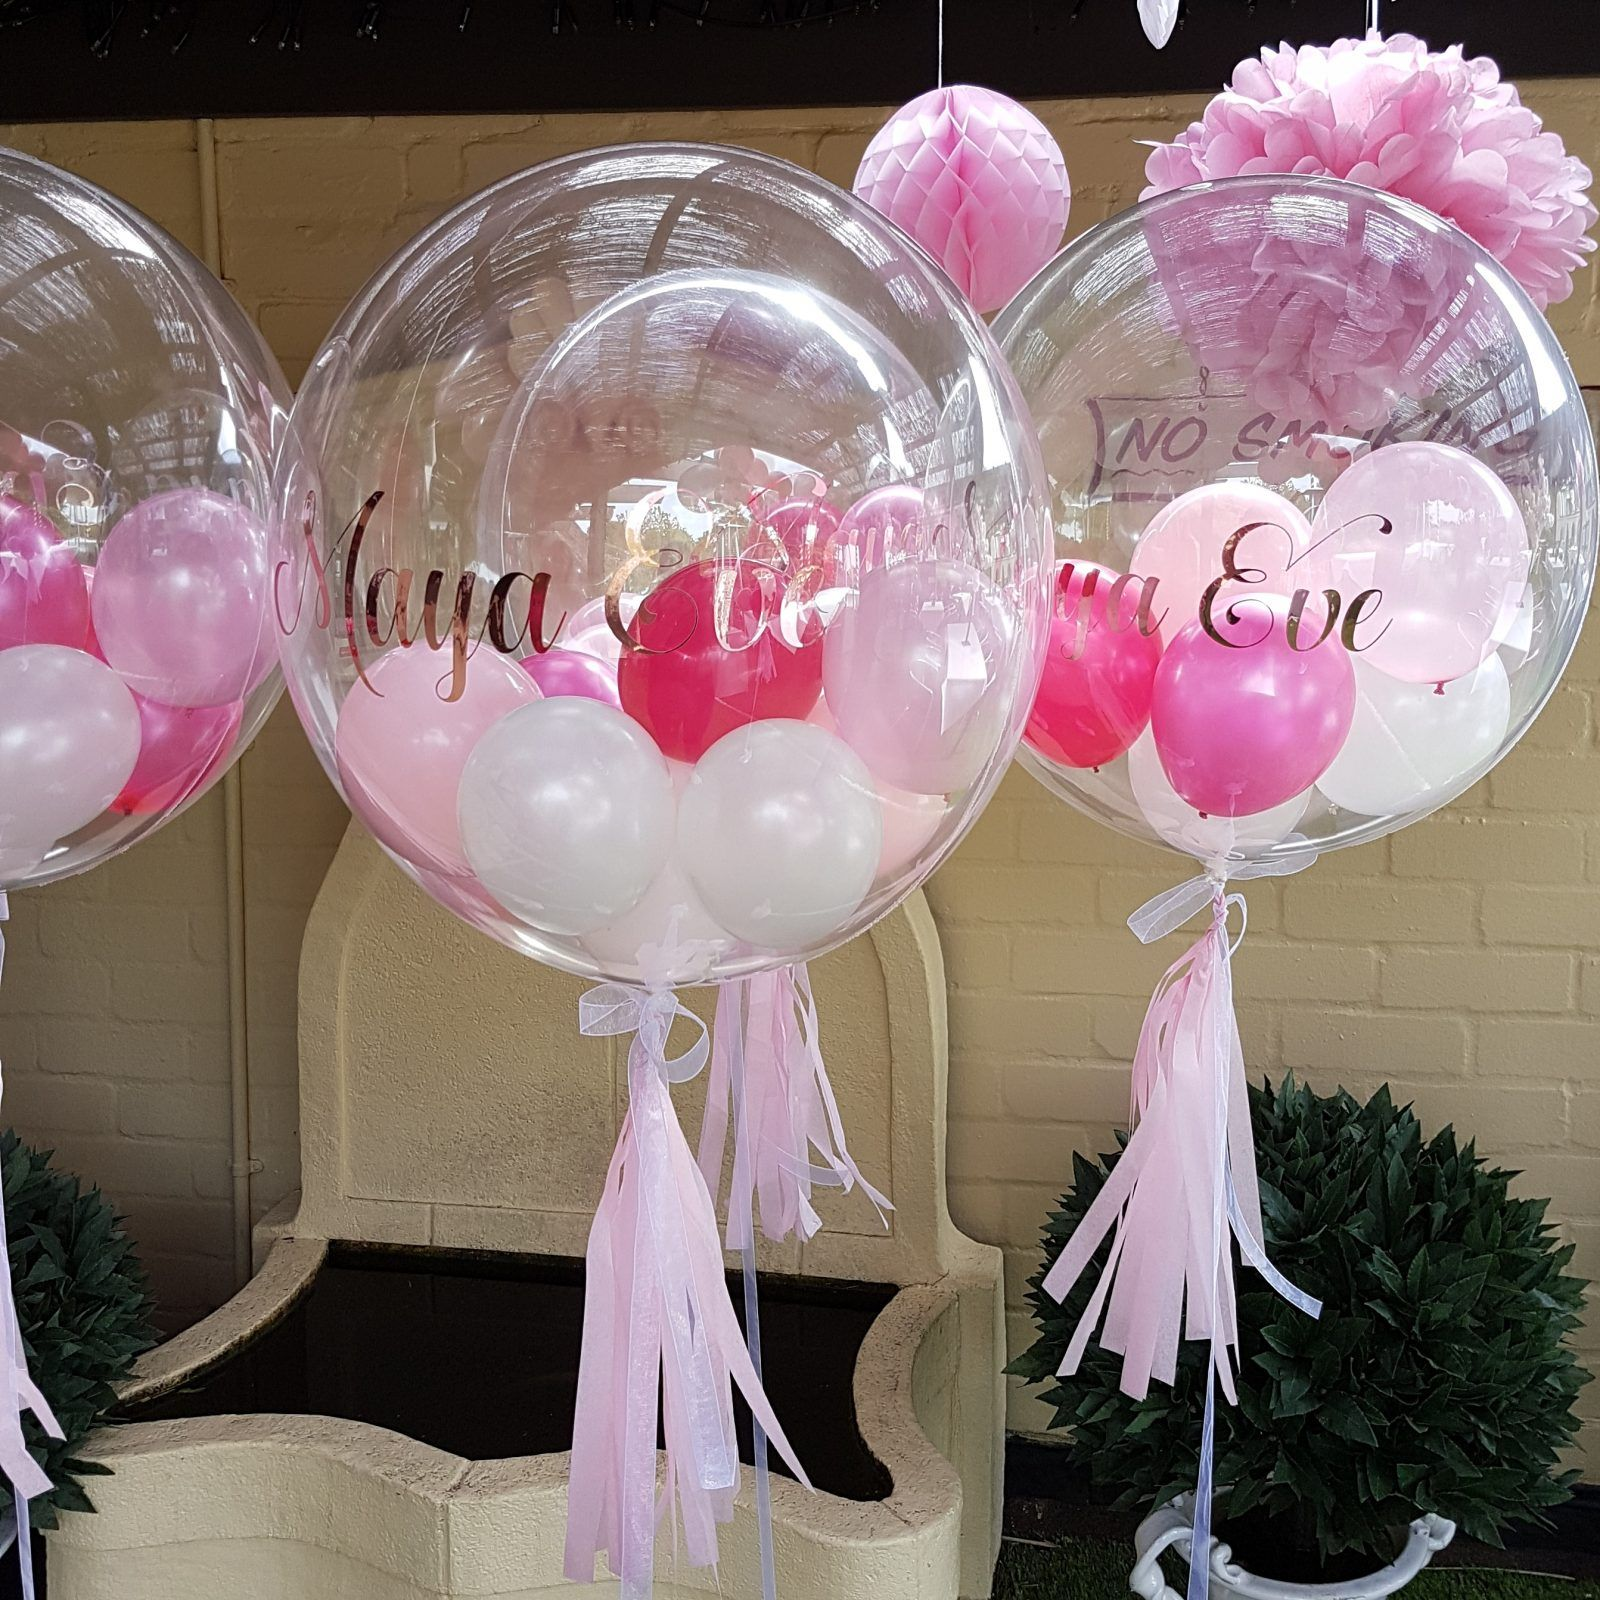 Bubbles, Balloons & Gifts Personalised Balloon Gifts. Created by Pink Tree Parties, Kirkham